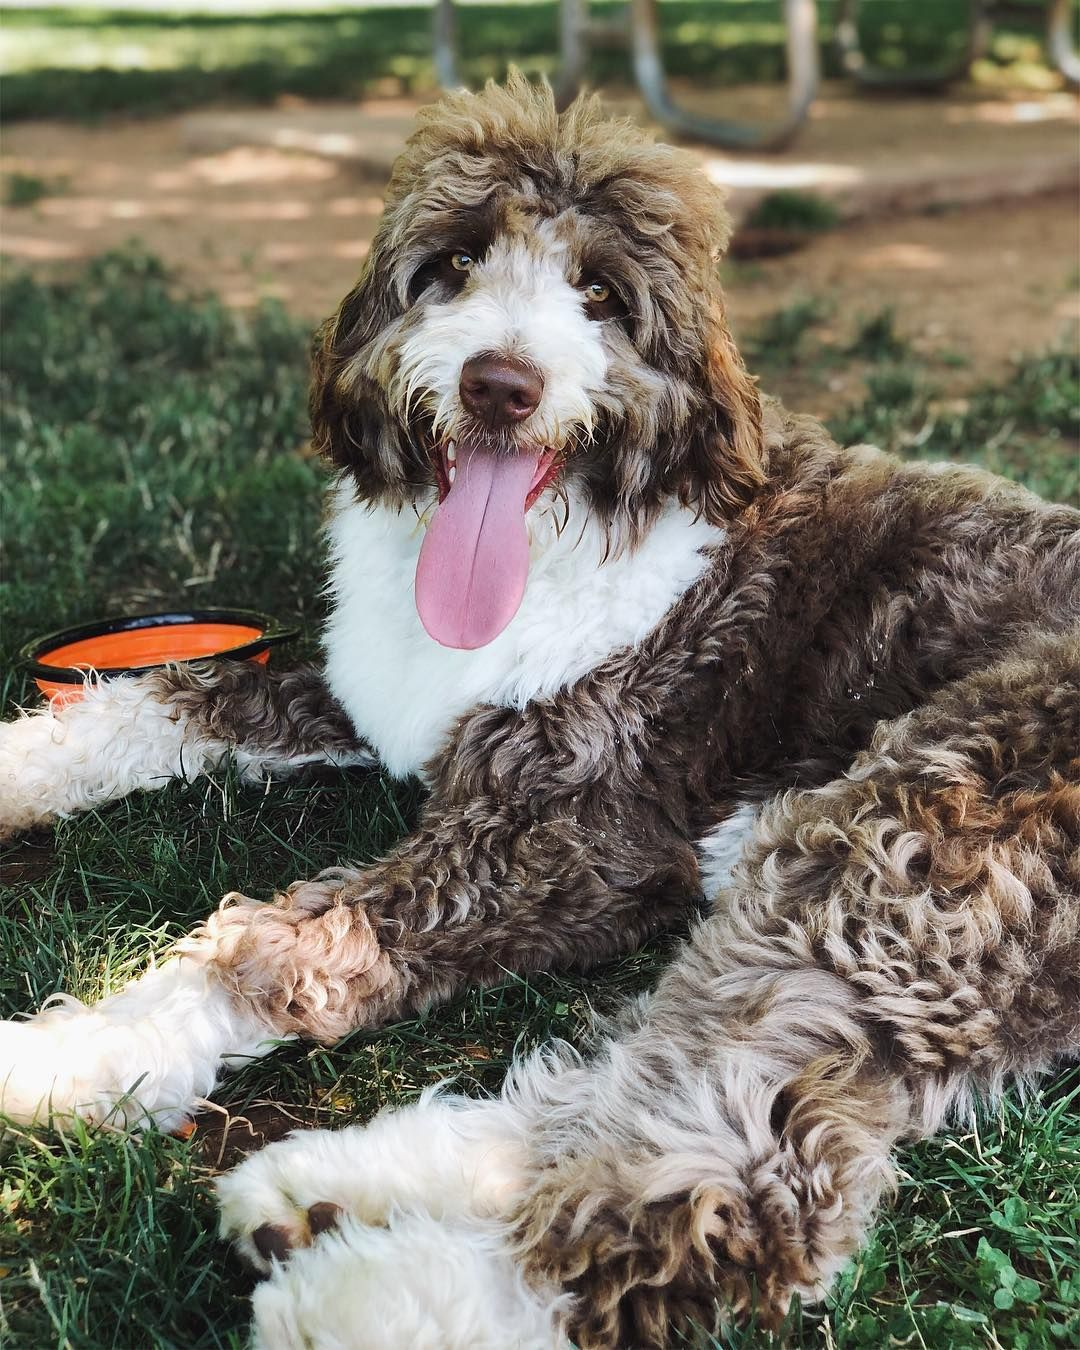 Aussiedoodles Super Smart Hybrid Can Almost Read Your Mind Aussiedoodles Aussiedoodlepuppies Cutepuppies Dogs Dogbeast Aussiedoodle Doodle Dog Breeds Mini Puppies